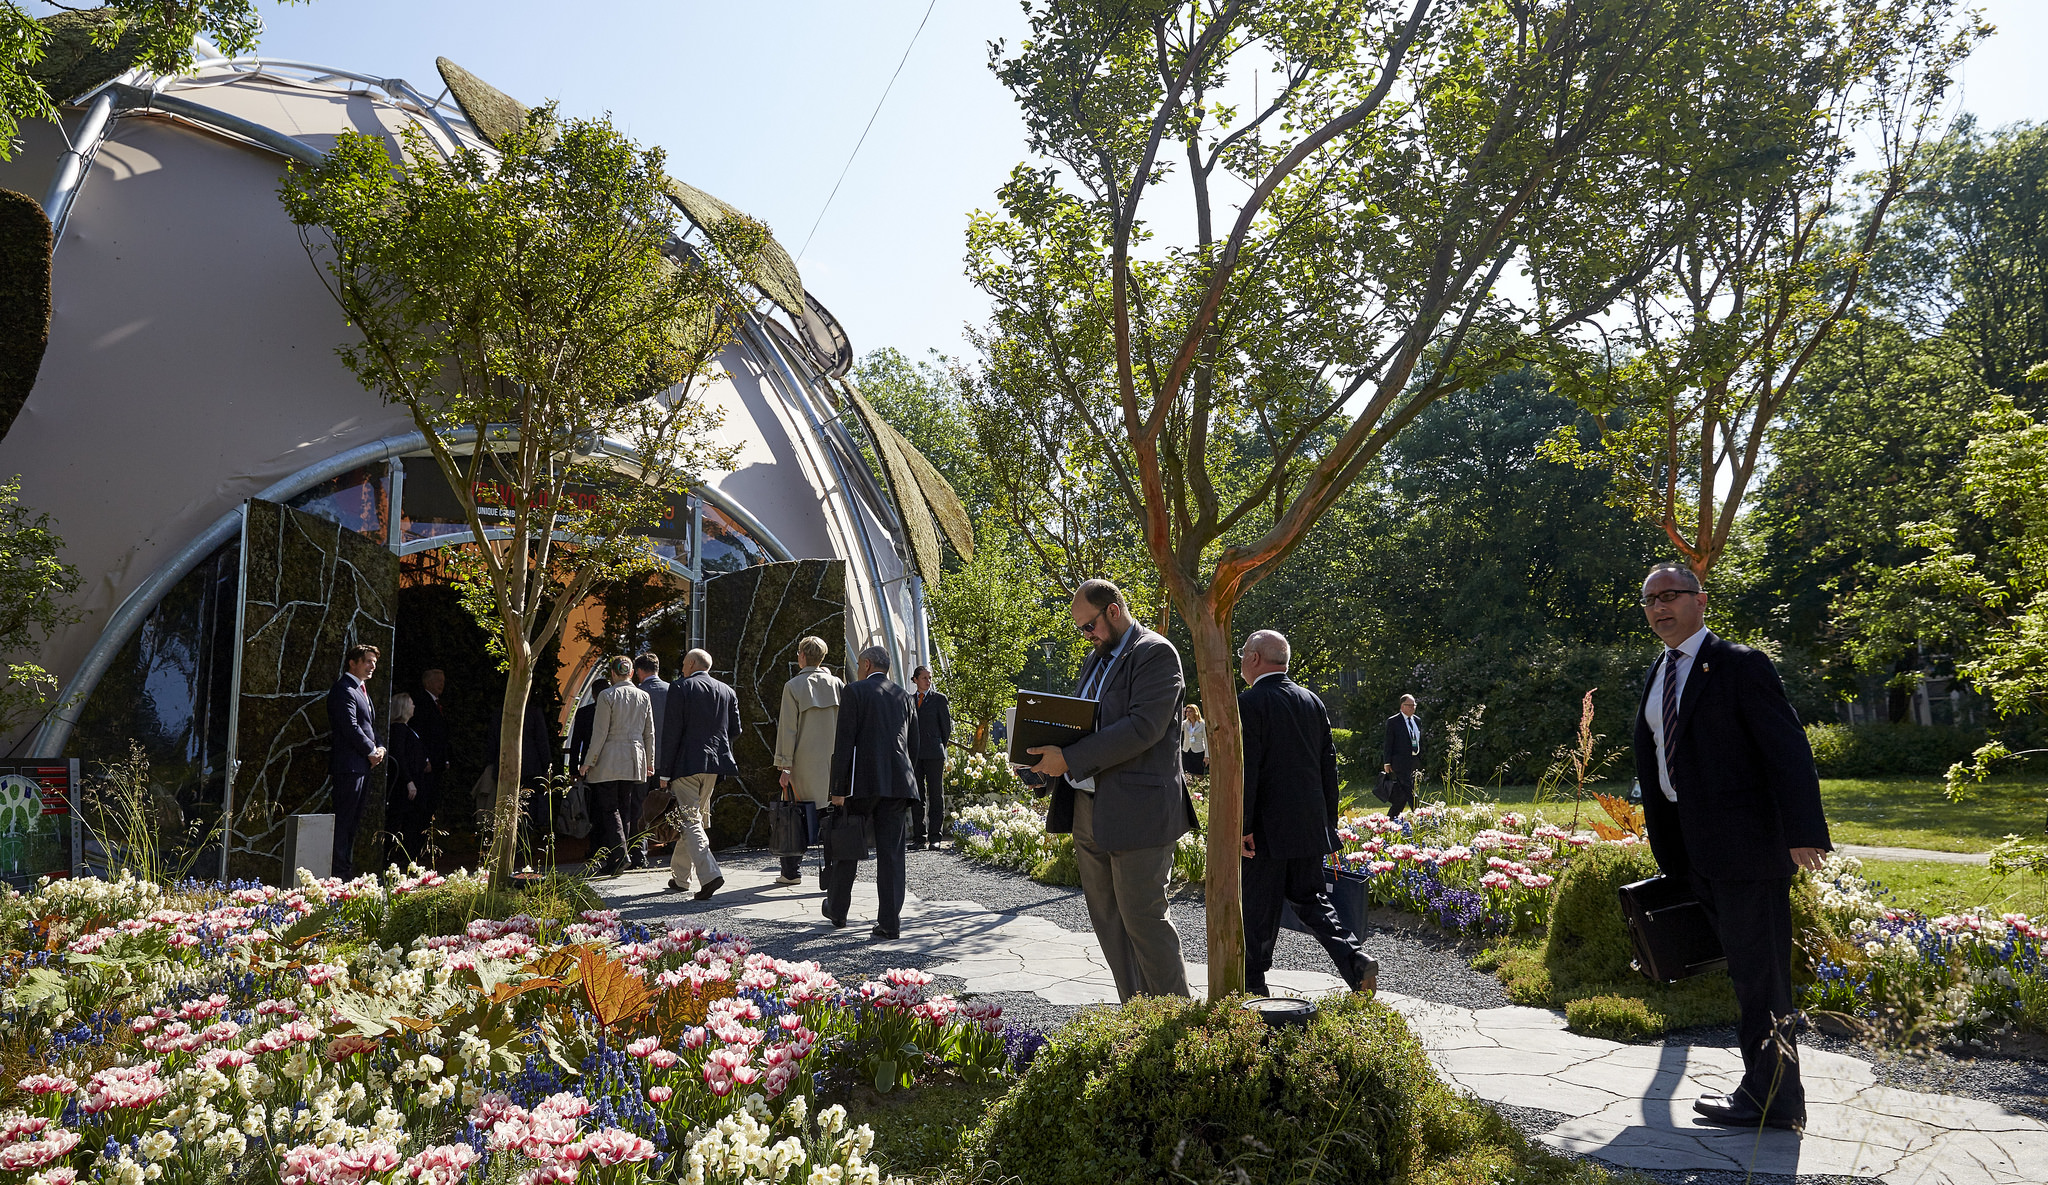 Ecodome highlights Dutch green sector